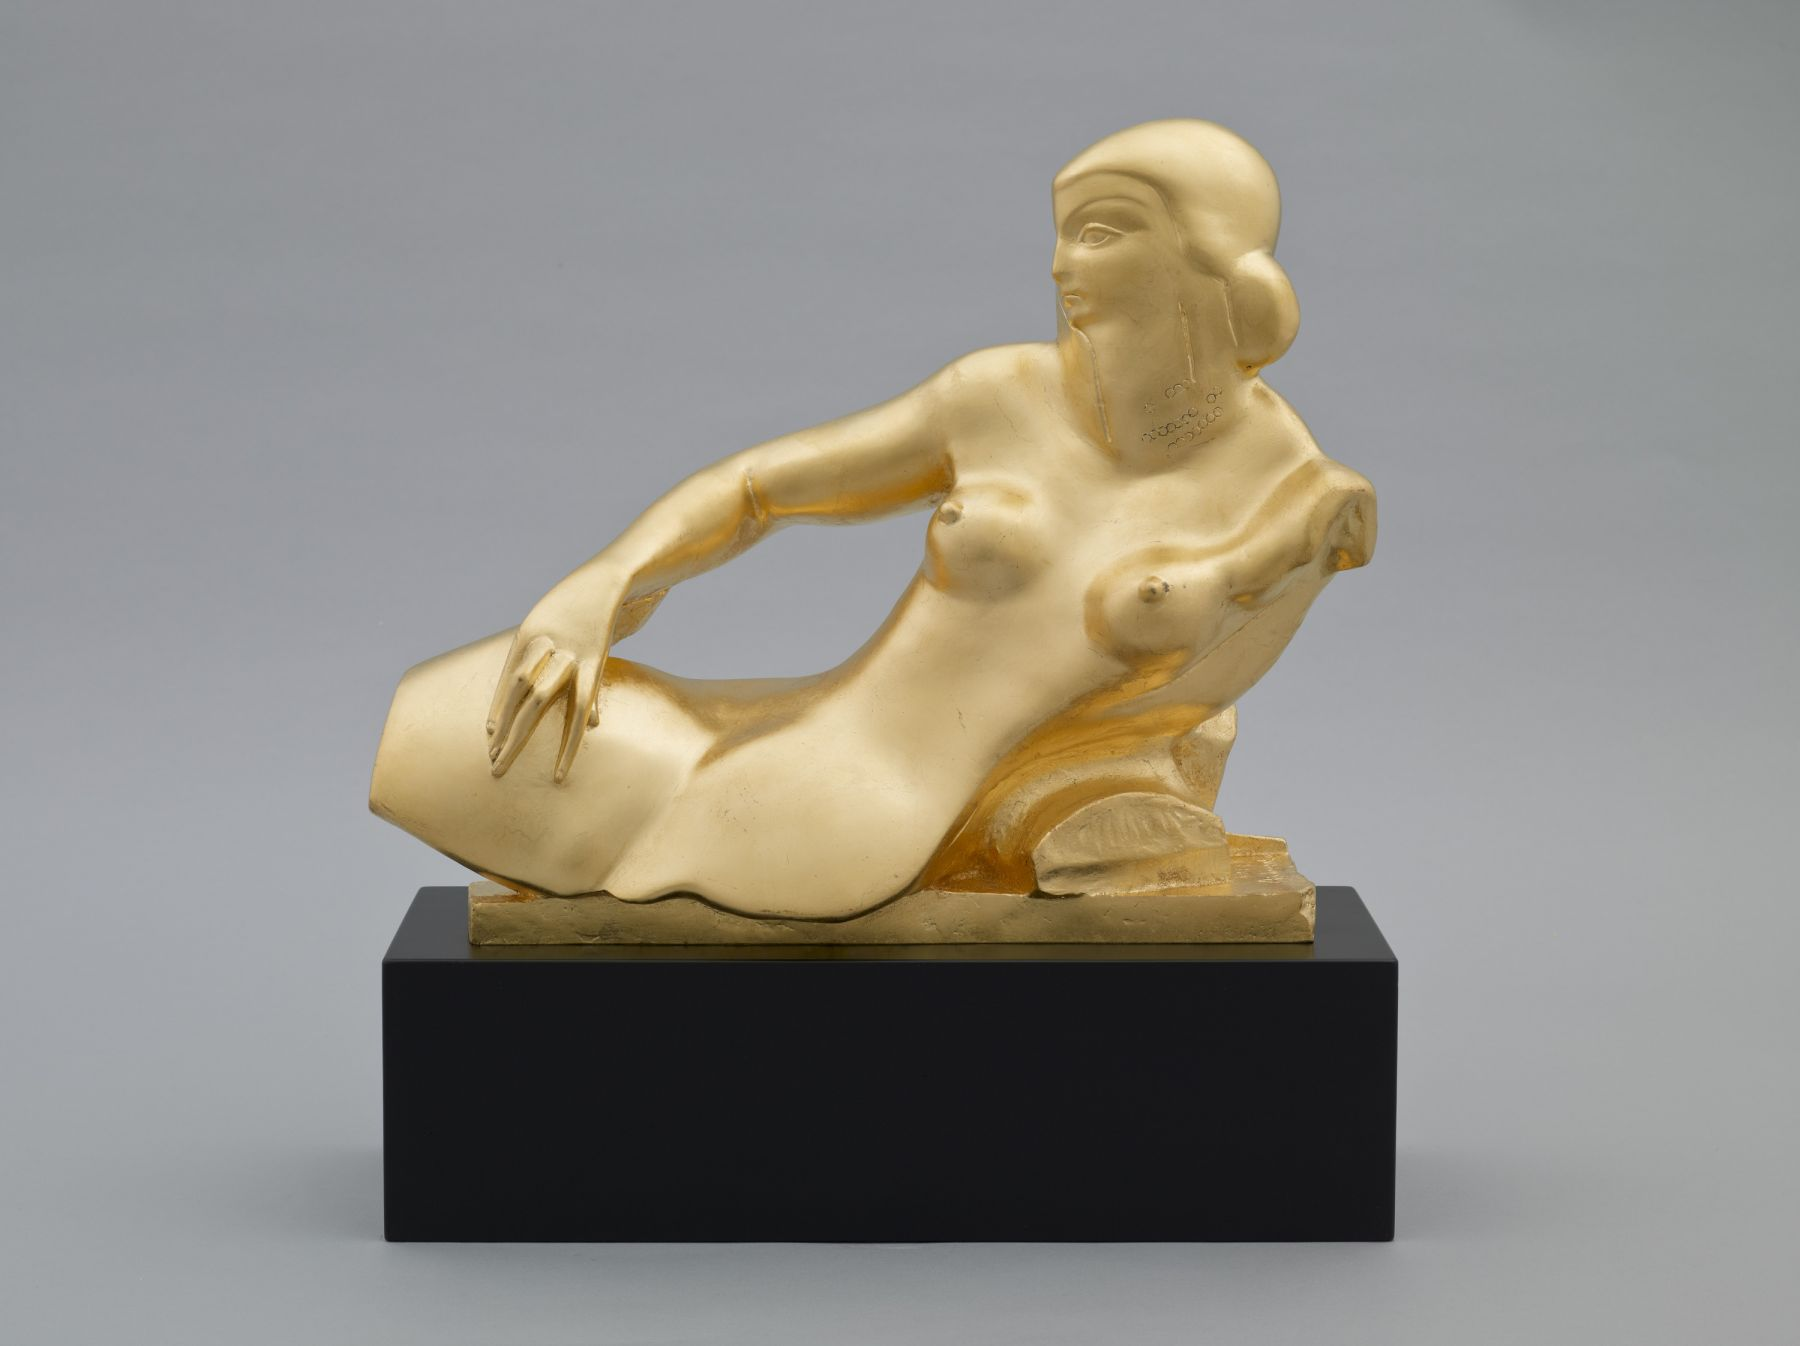 Alexander Archipenko, Angelica (Sarcophagus of Angelica), 1925, cast in 2008, bronze, gold leafed, 12 h x 14 w x 5 7/8 d inches, posthumous cast